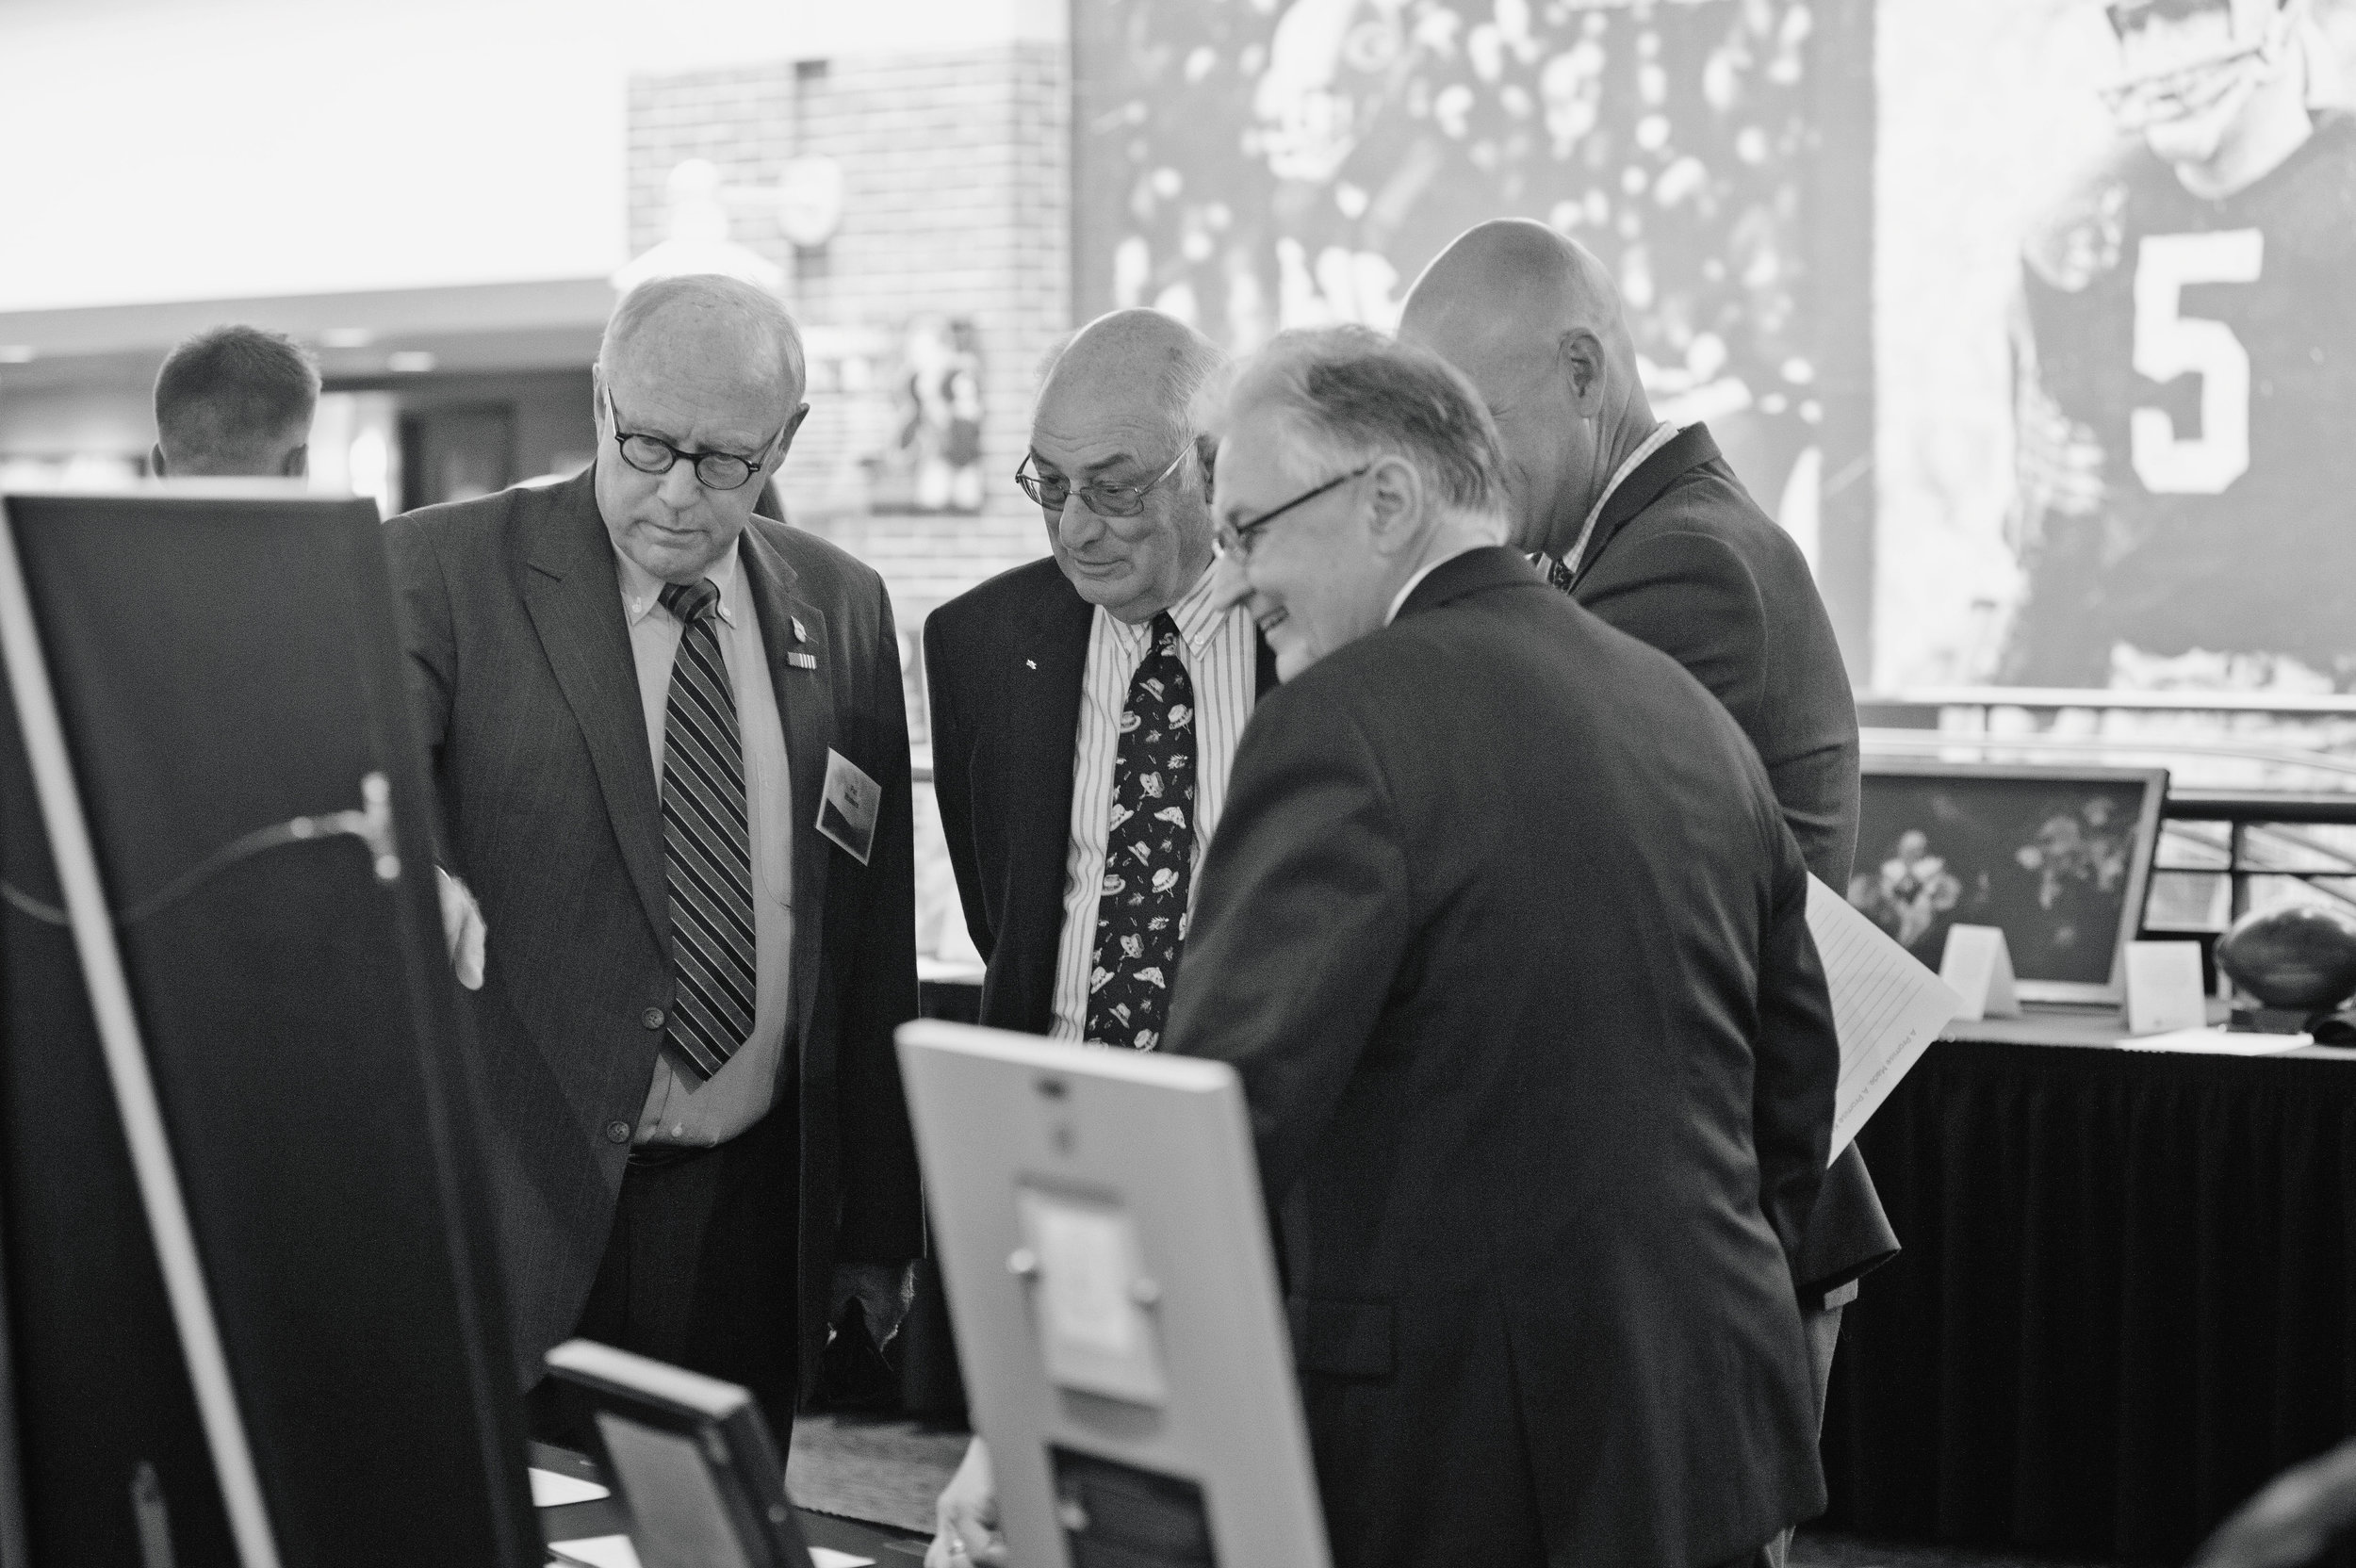 Auction-Dad and guys.jpg